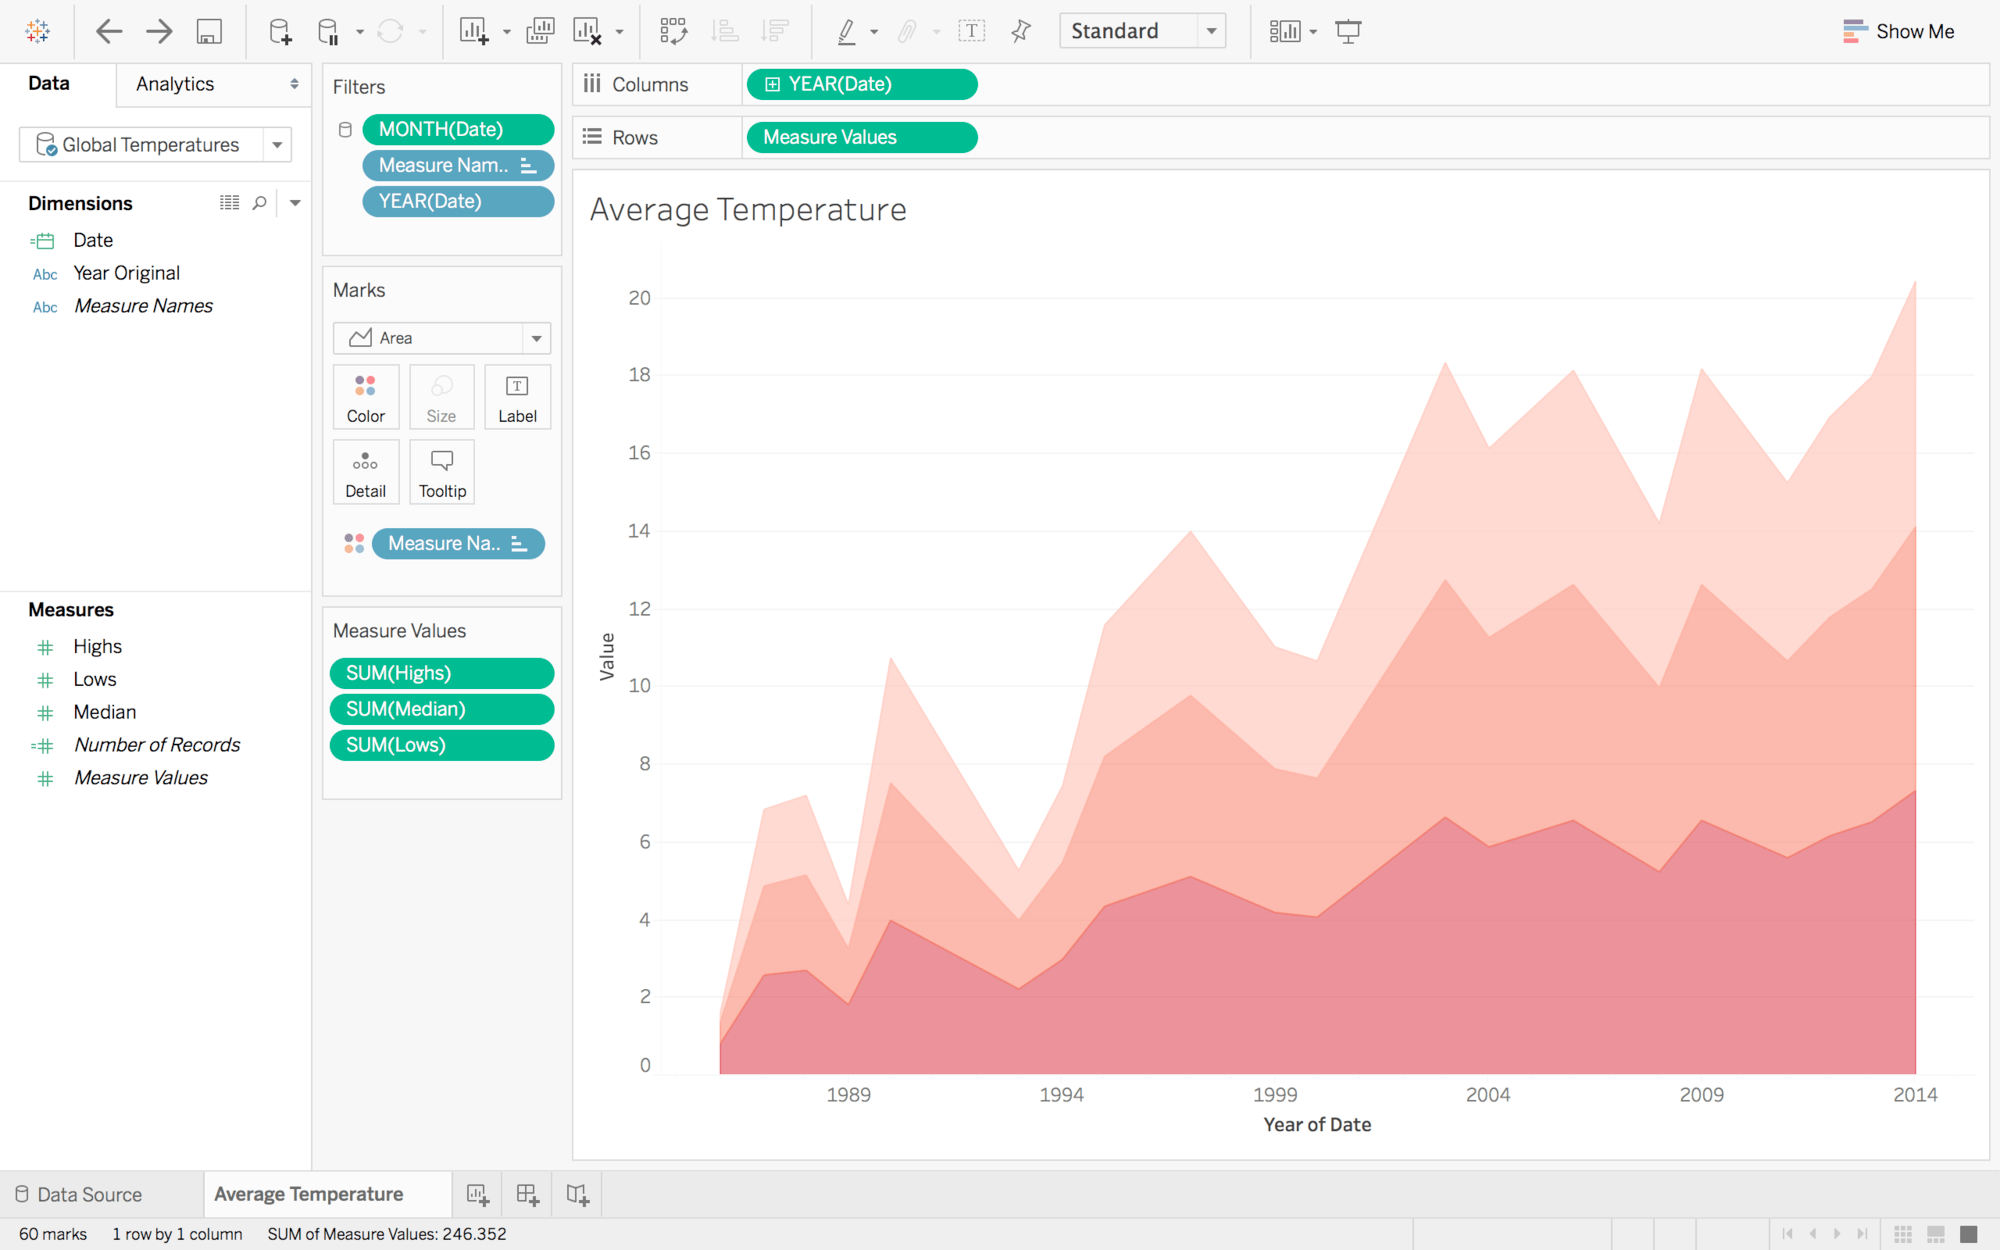 Time series analysis in Tableau